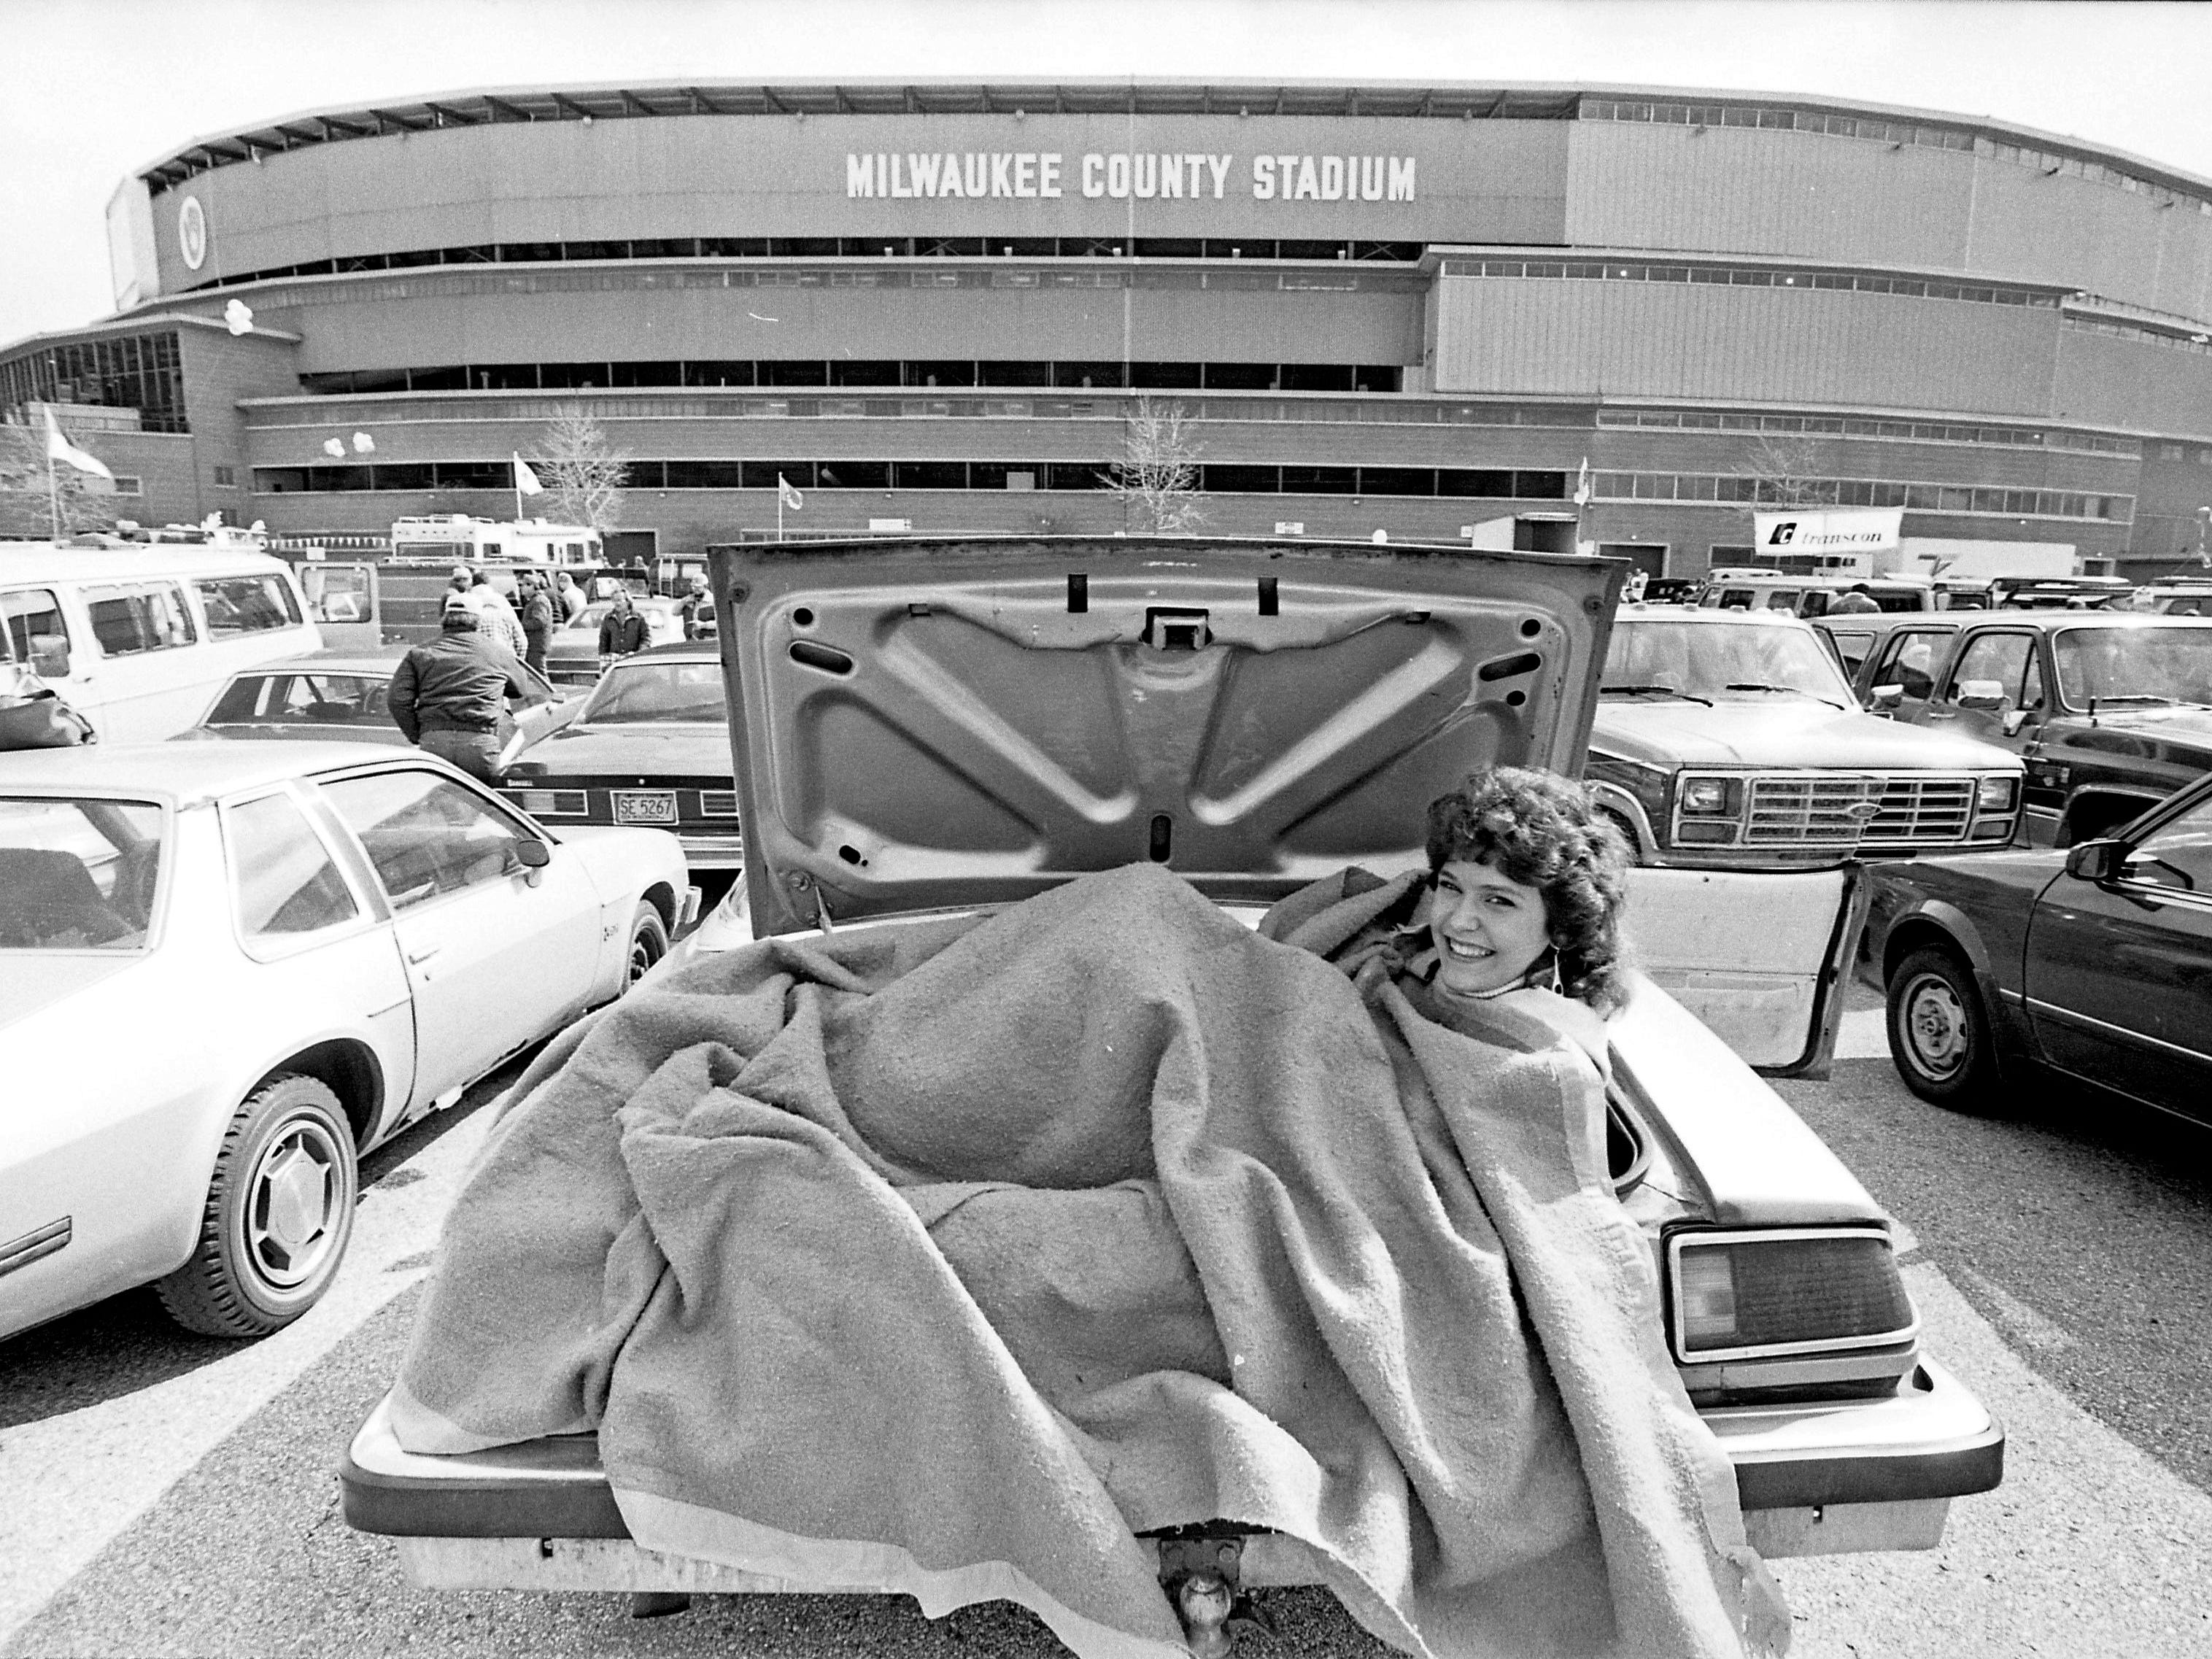 Sandy Kathelser finds an unusual place to warm up as she waits for County Stadium to open on April 9, 1985, for the Milwaukee Brewers' home opener. It was 41 degrees as 53,207 fans turned out to see the Brewers lose to the Chicago White Sox, 4-2, on opening day.